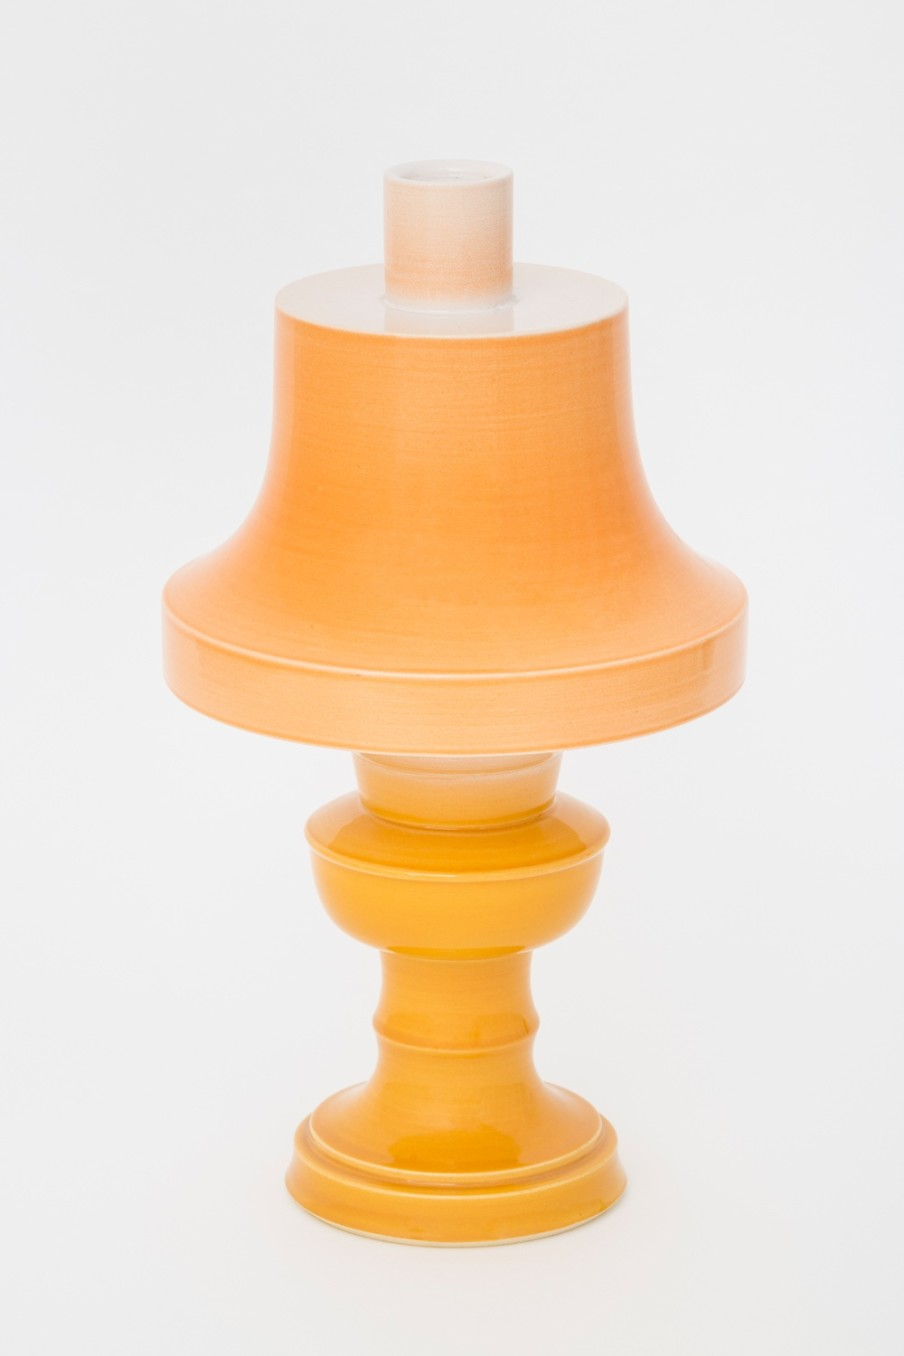 Richard Slee, Lamp, 2002, Glazed ceramic, 44 x 23 cm, 17 3/8 x 9 1/8 in